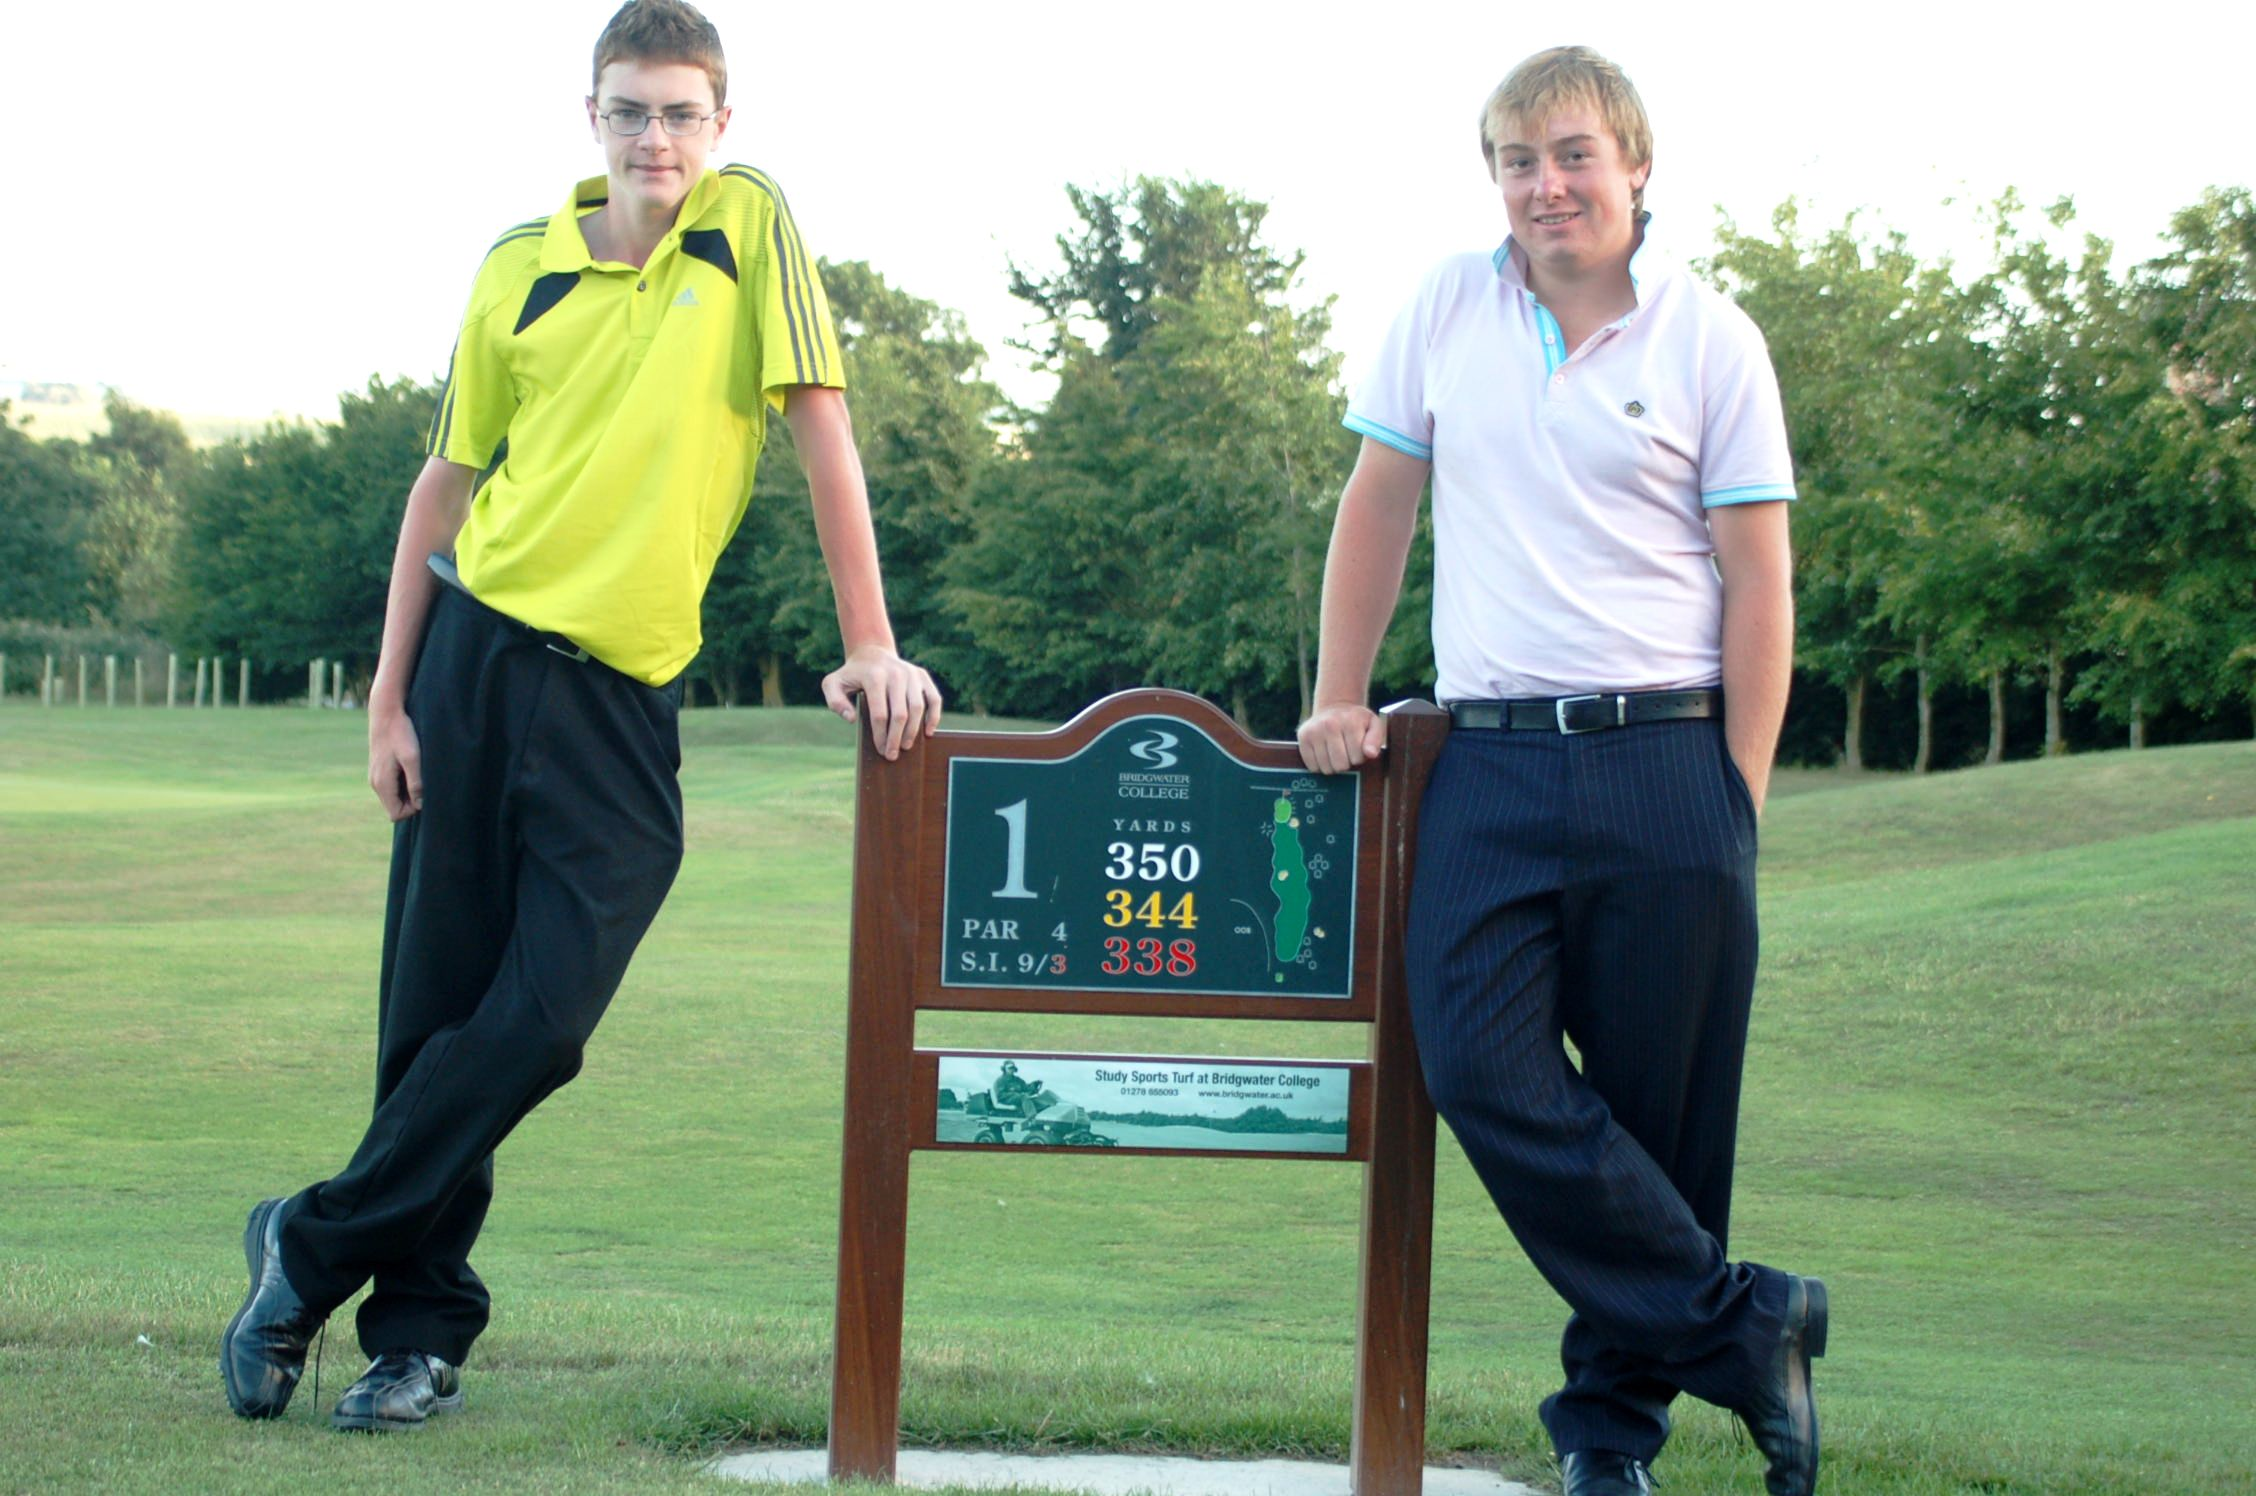 Left to Right: Handicap Champion James Sewell and Scratch Champion Josh Butterfield.